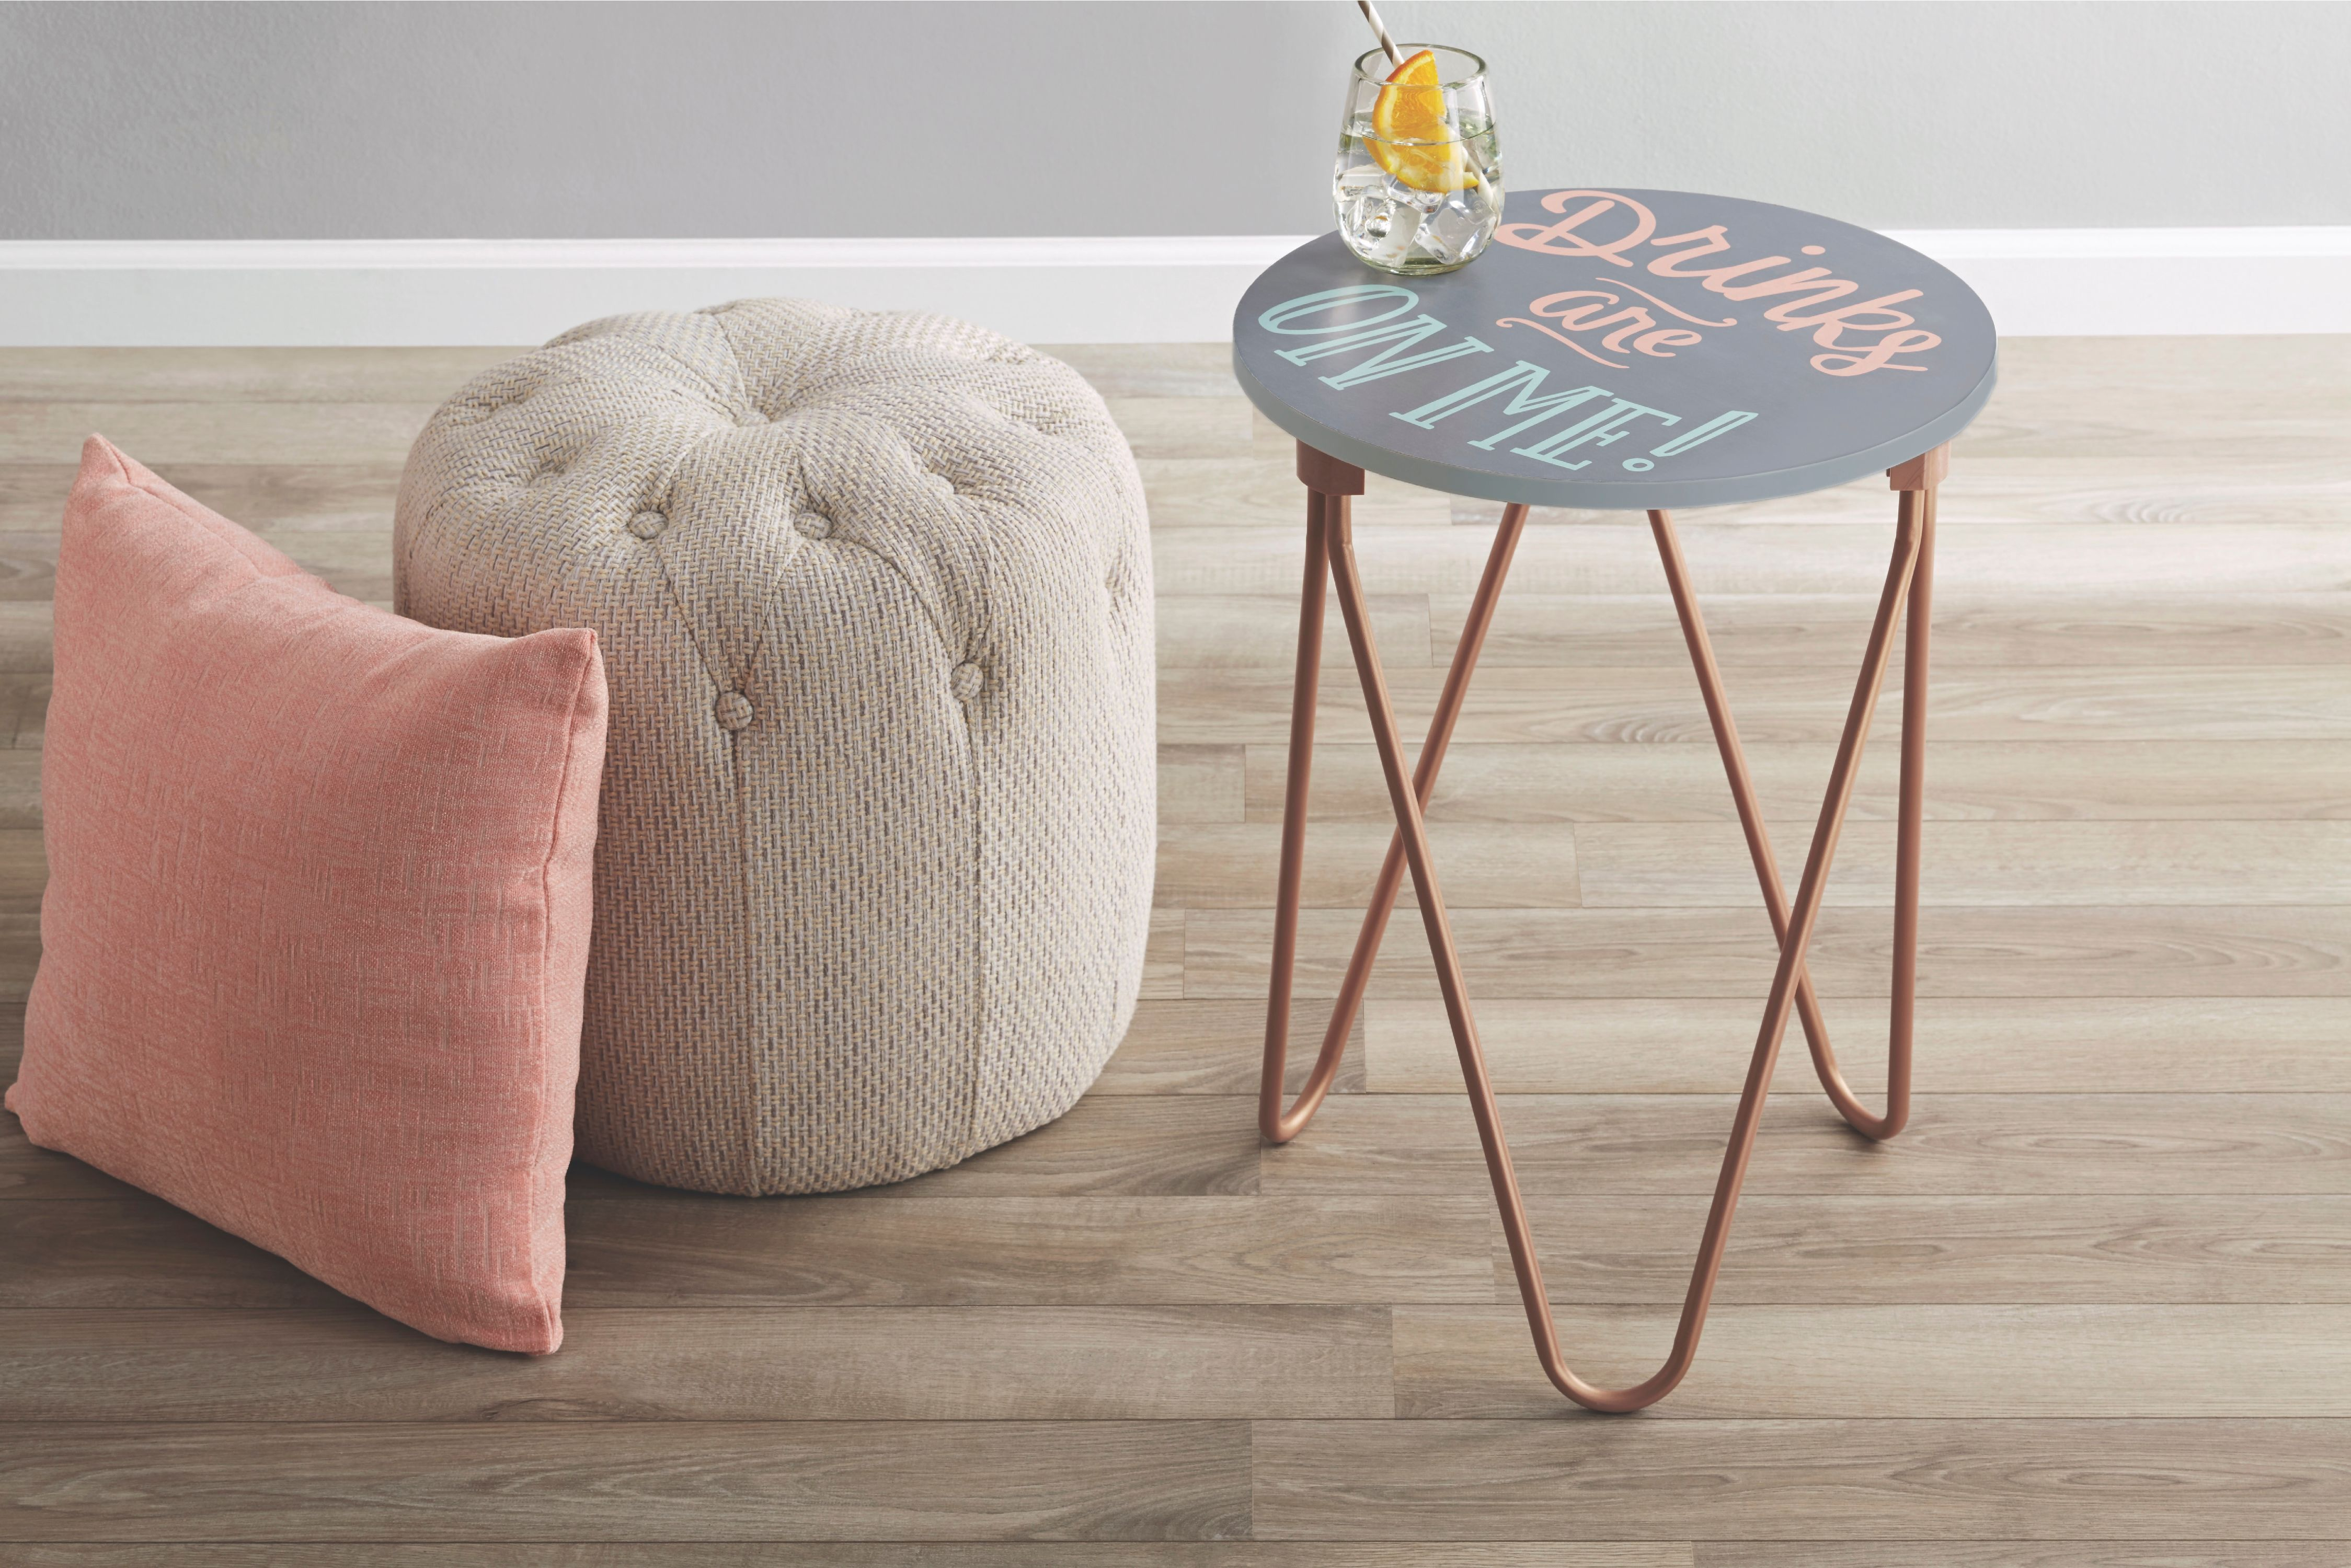 Mainstays Accent Table, Drinks Are On Me! by HUISEN FURNITURE LONGNAN CO LTD